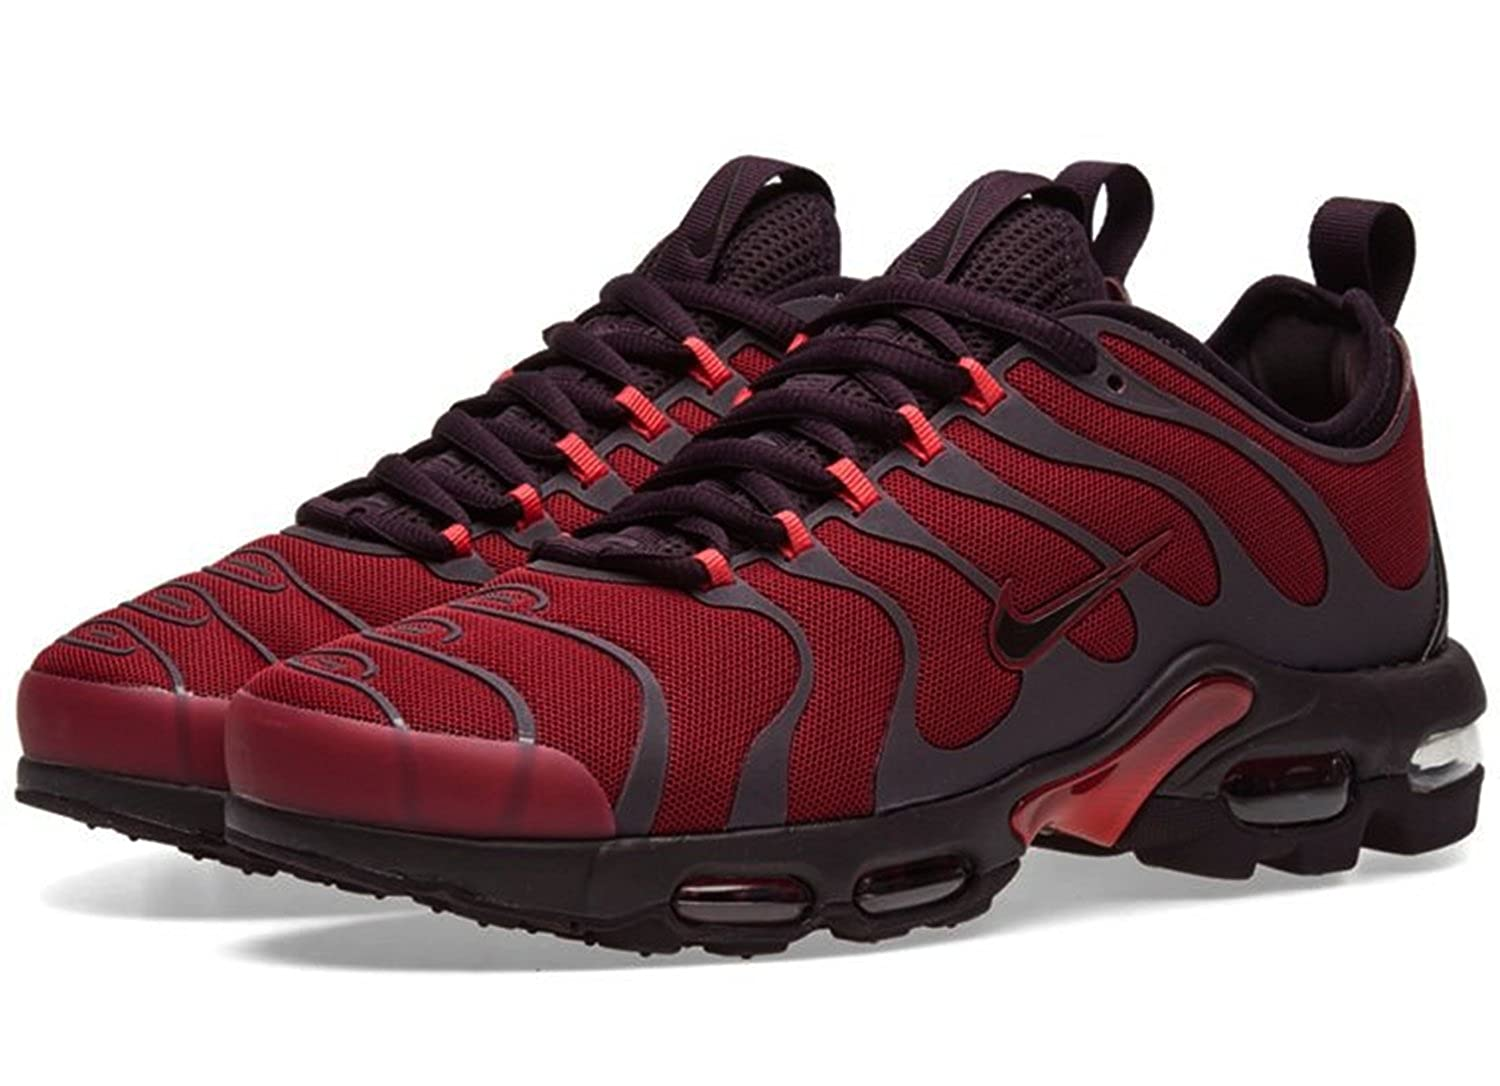 cfc43a2574 Nike Air Max Plus TN Ultra Lifestyle Casual Sneakers Noble red/Port Wine  New 898015-601 - 14: Amazon.co.uk: Shoes & Bags